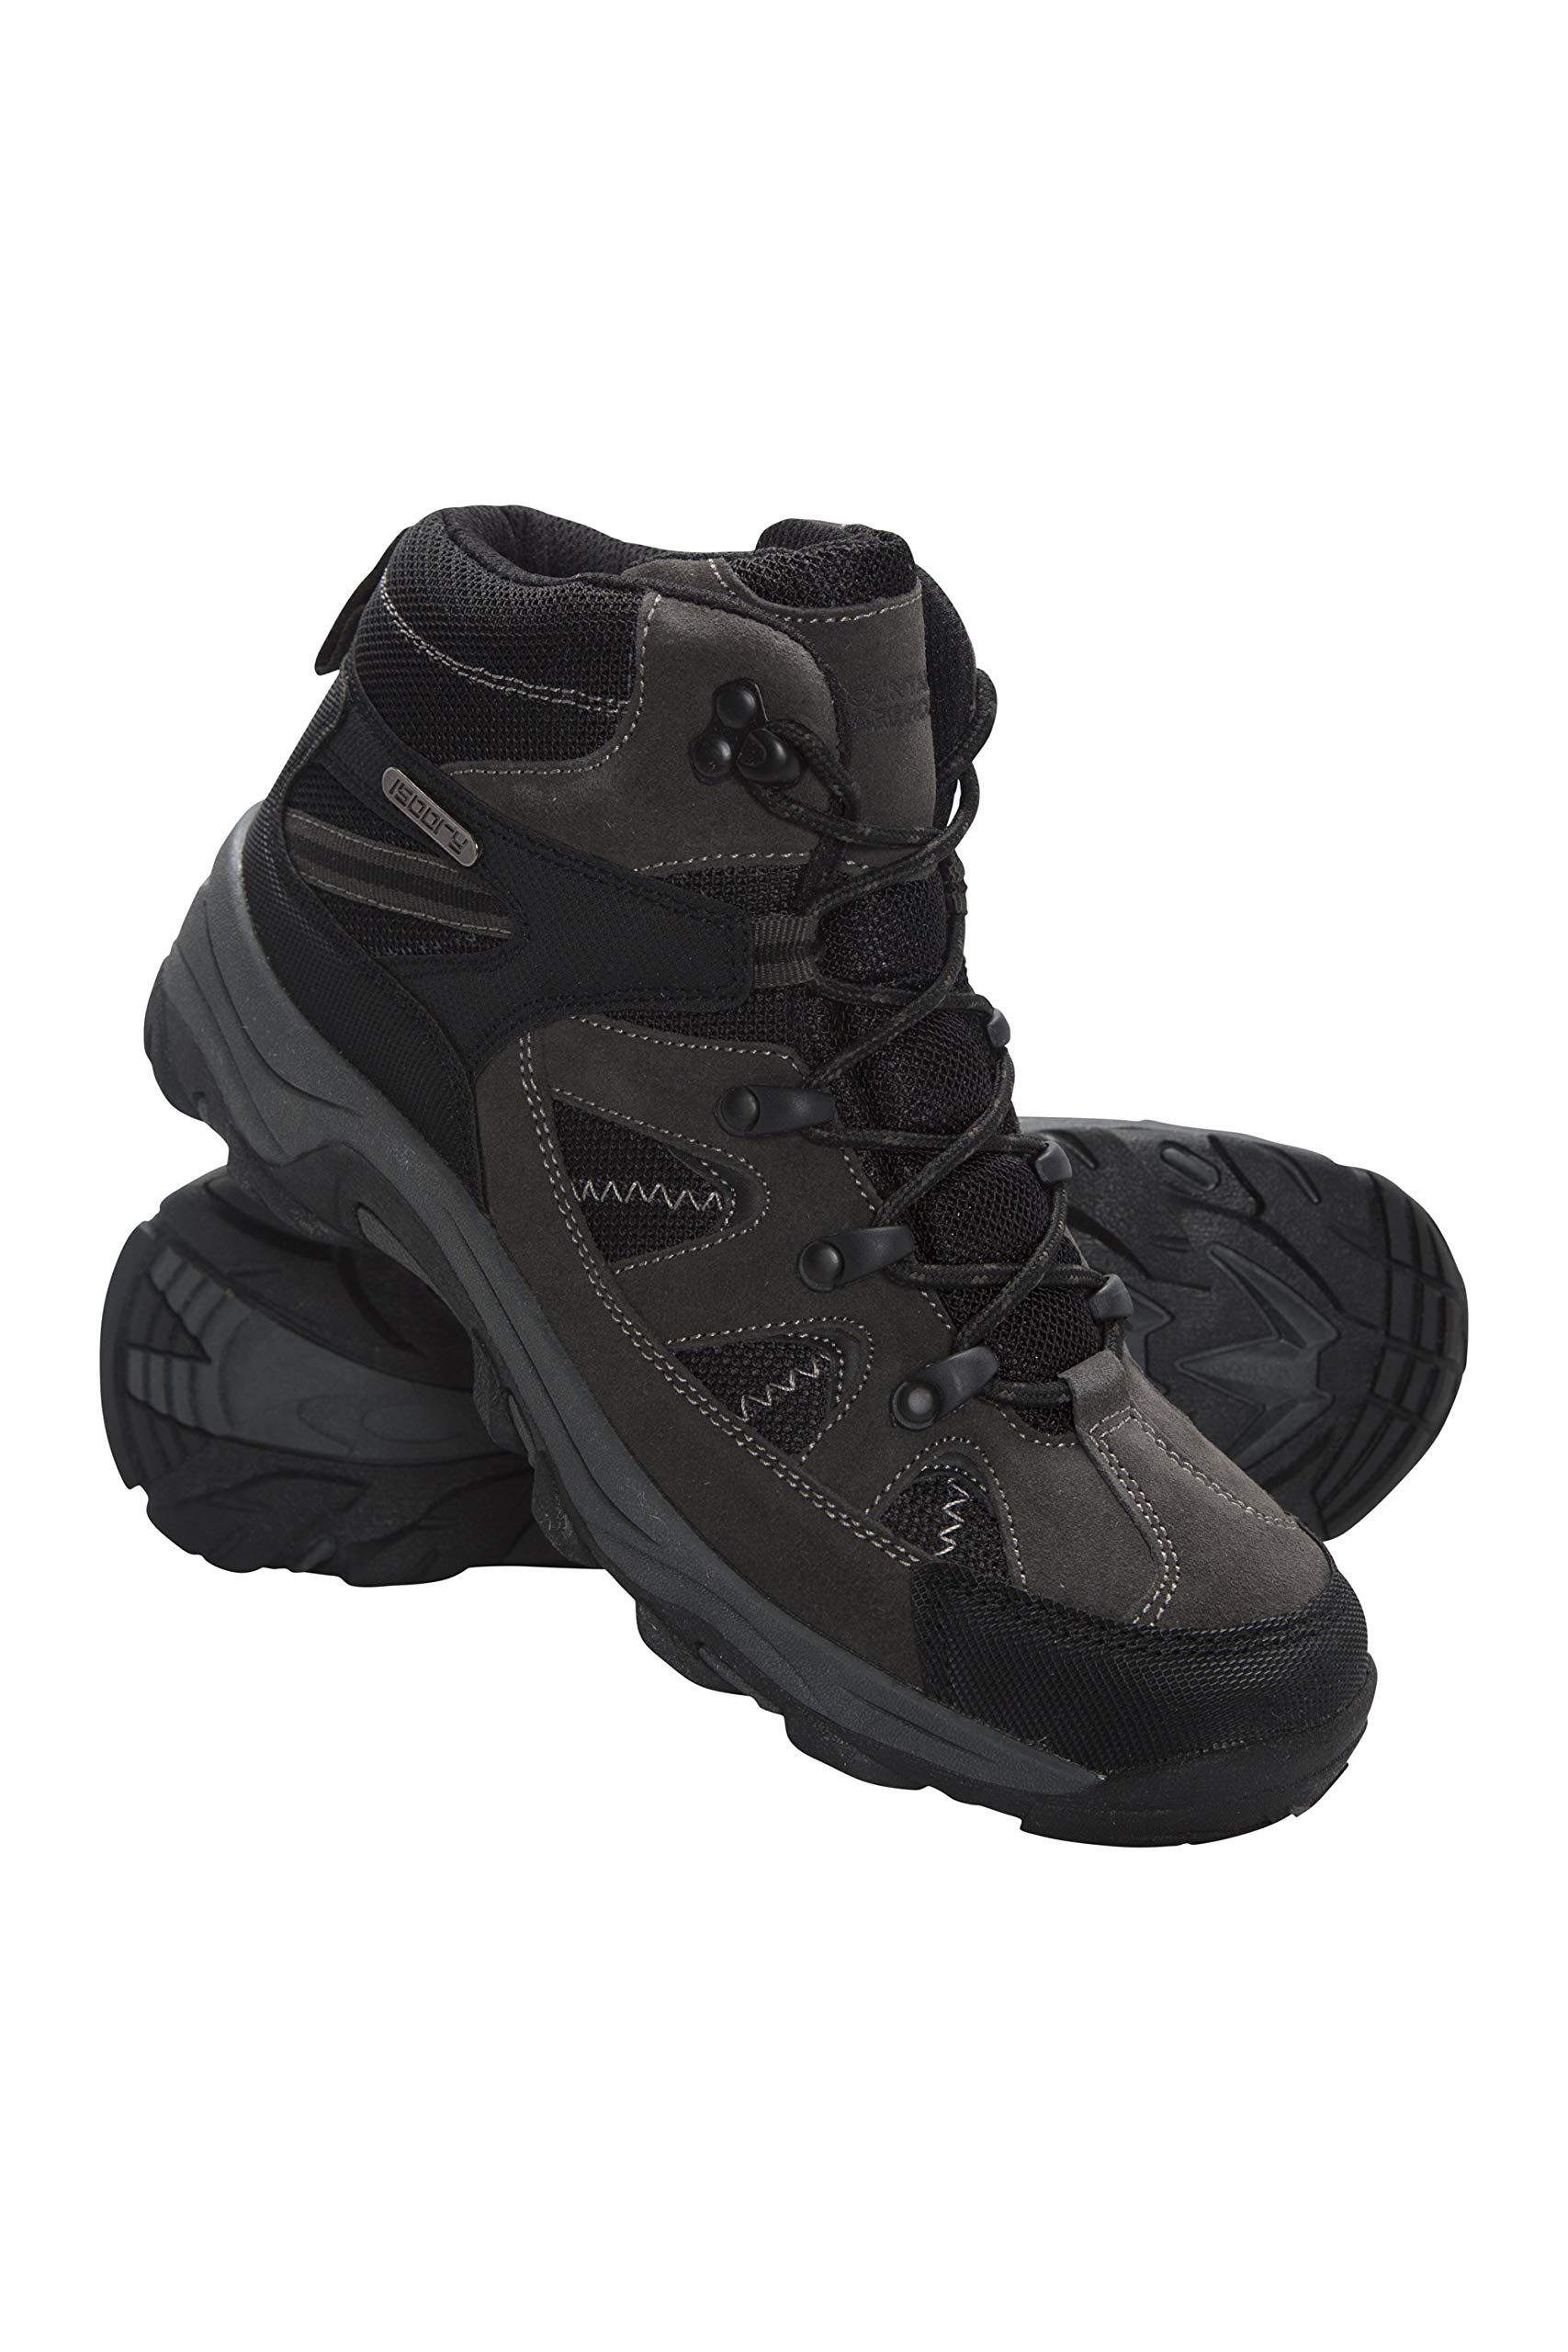 Mountain Warehouse Rapid Womens Waterproof Hiking Boots -Ladies Shoes